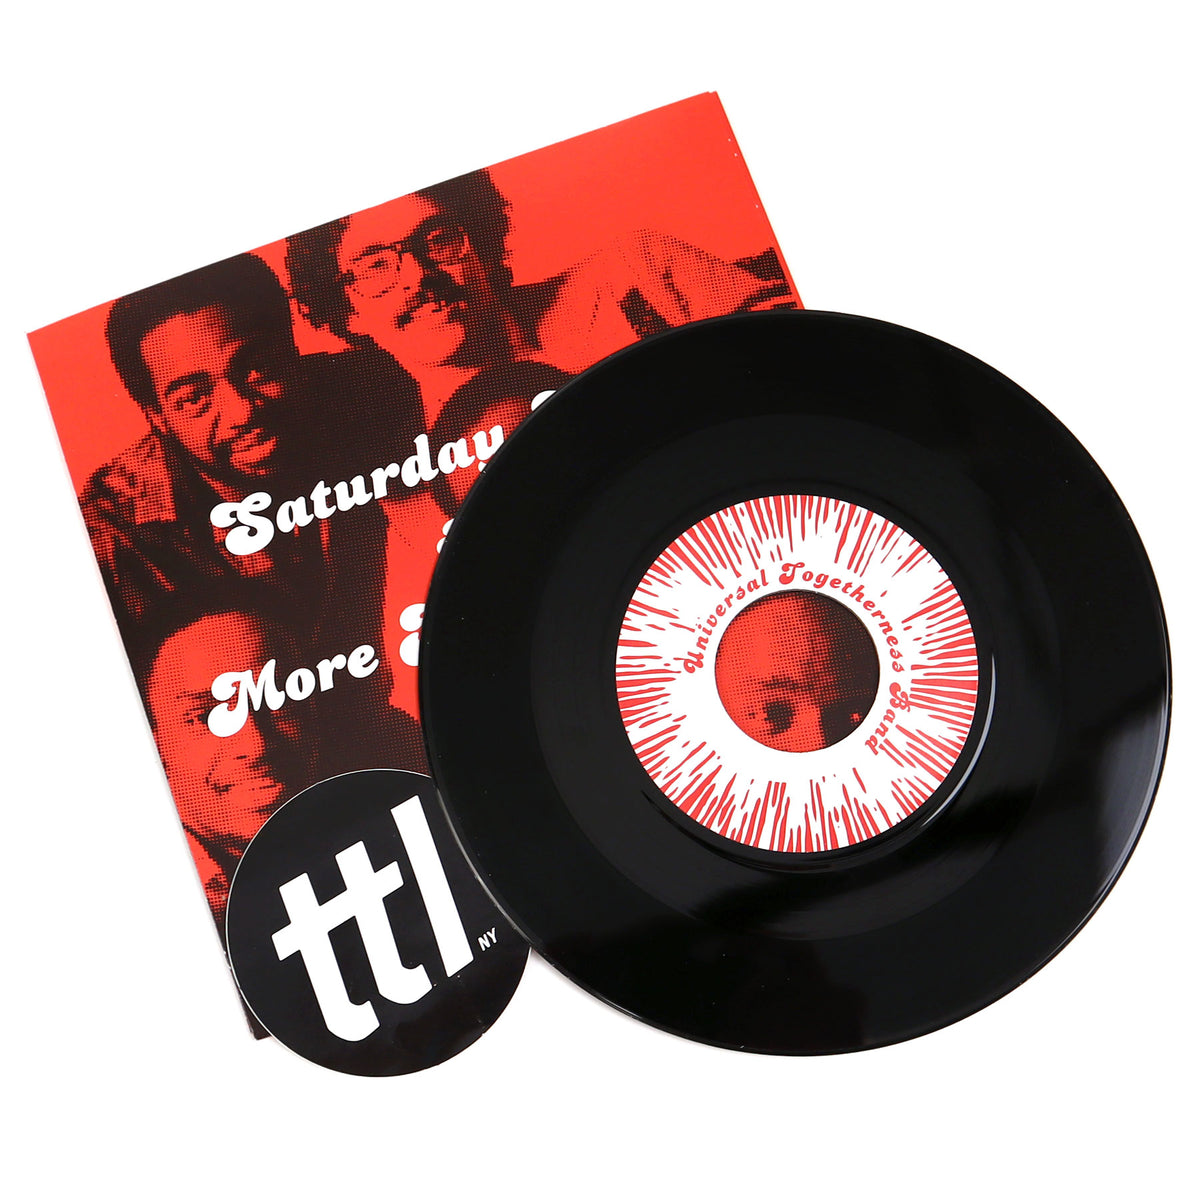 Universal Togetherness Band: Saturday Night / More Than Enough Vinyl 7""